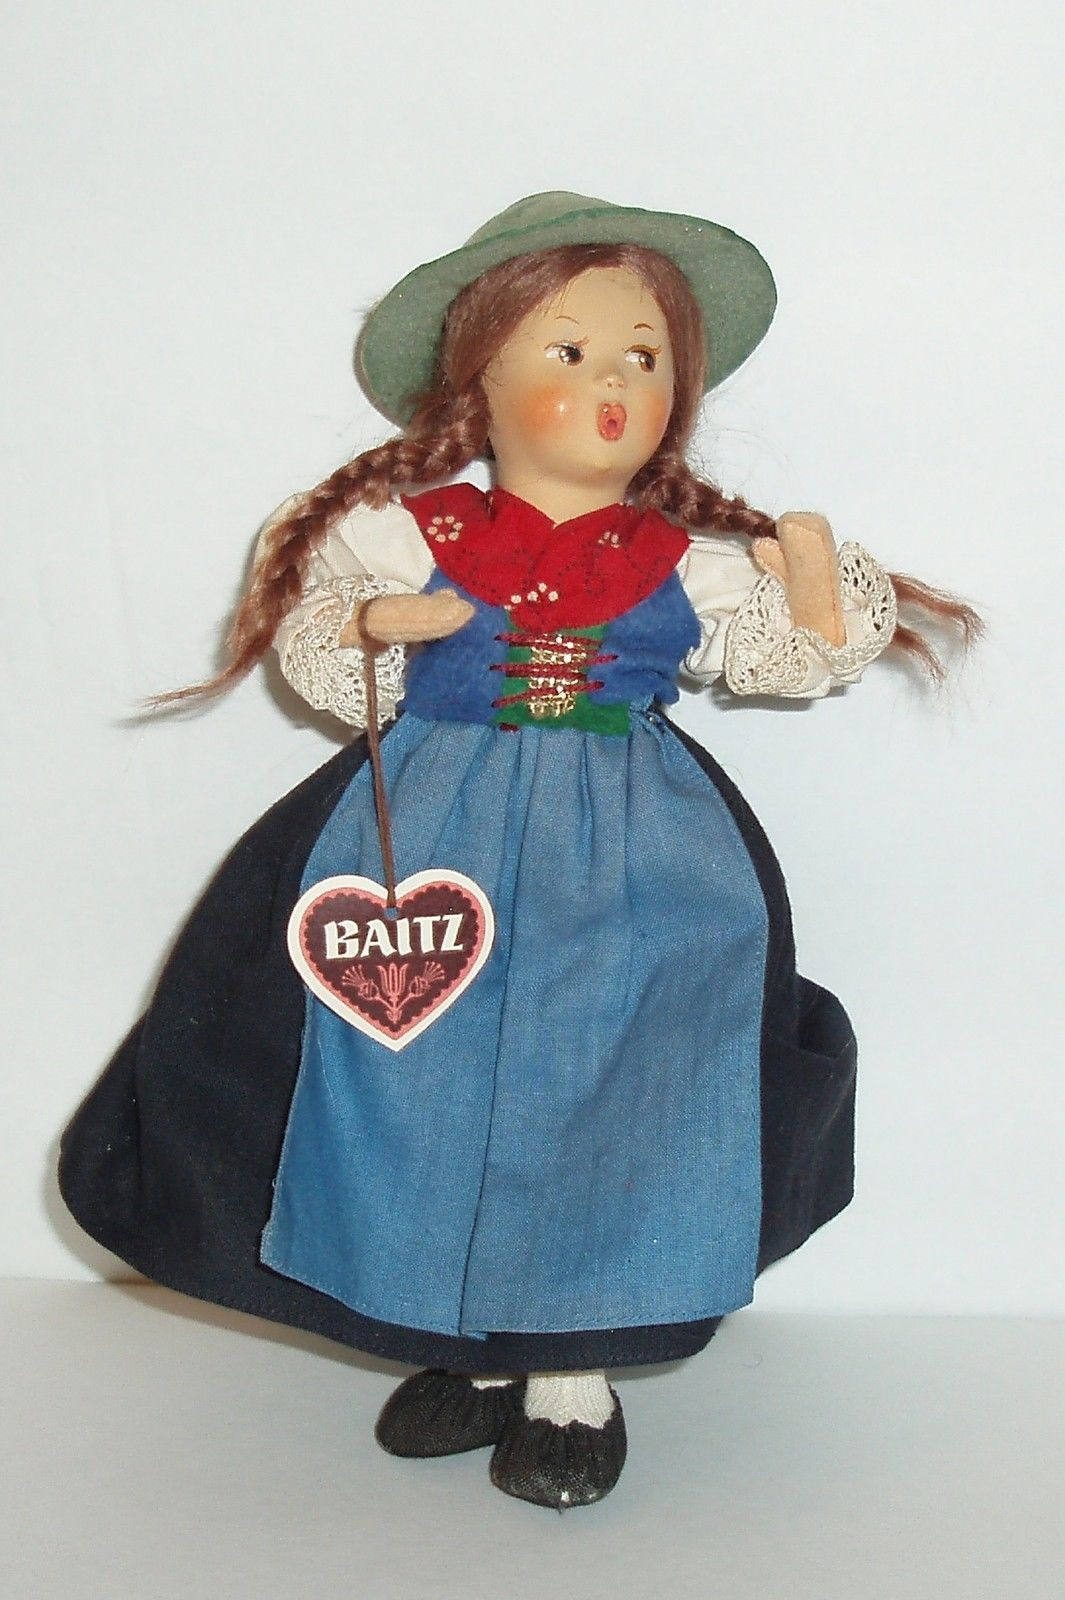 White lace apron ebay - 9 Vintage Baitz Austria Whistling Girl Doll Composition And Felt Wired Arms